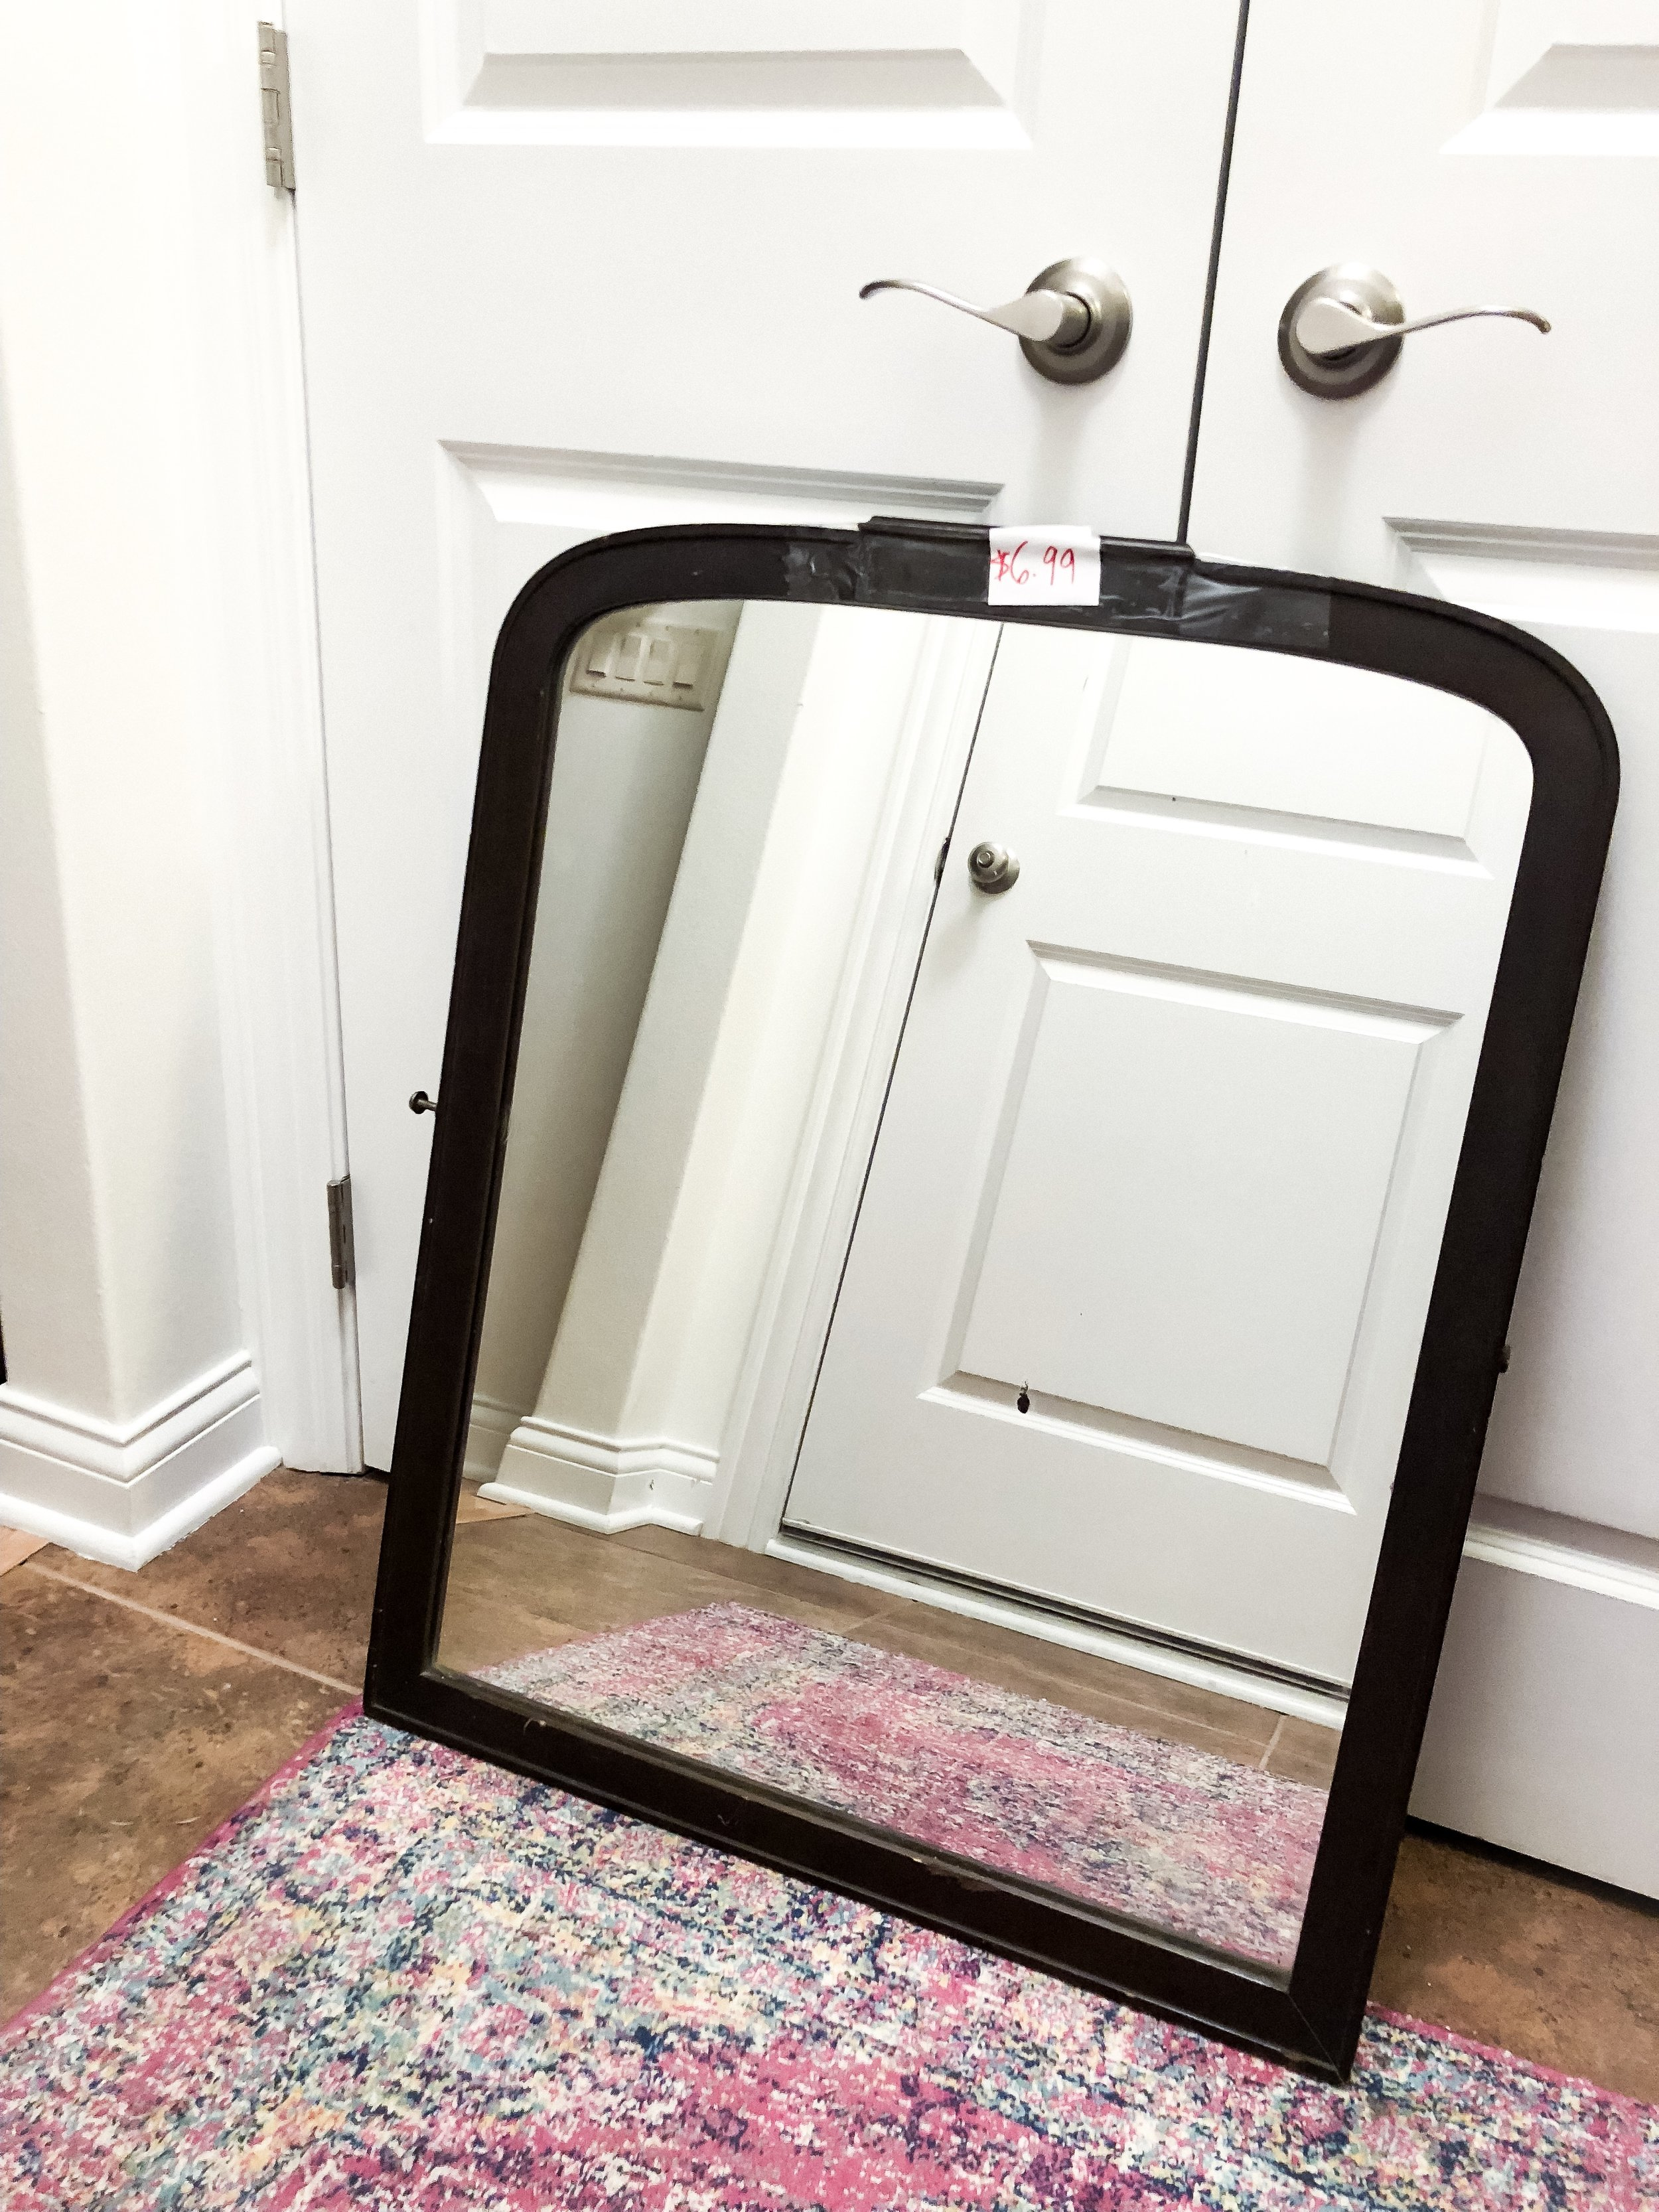 Anthropologie Mirror Dupe from hprallandco.com! | H.Prall & Co. Interior Decorating, Des Moines, IA